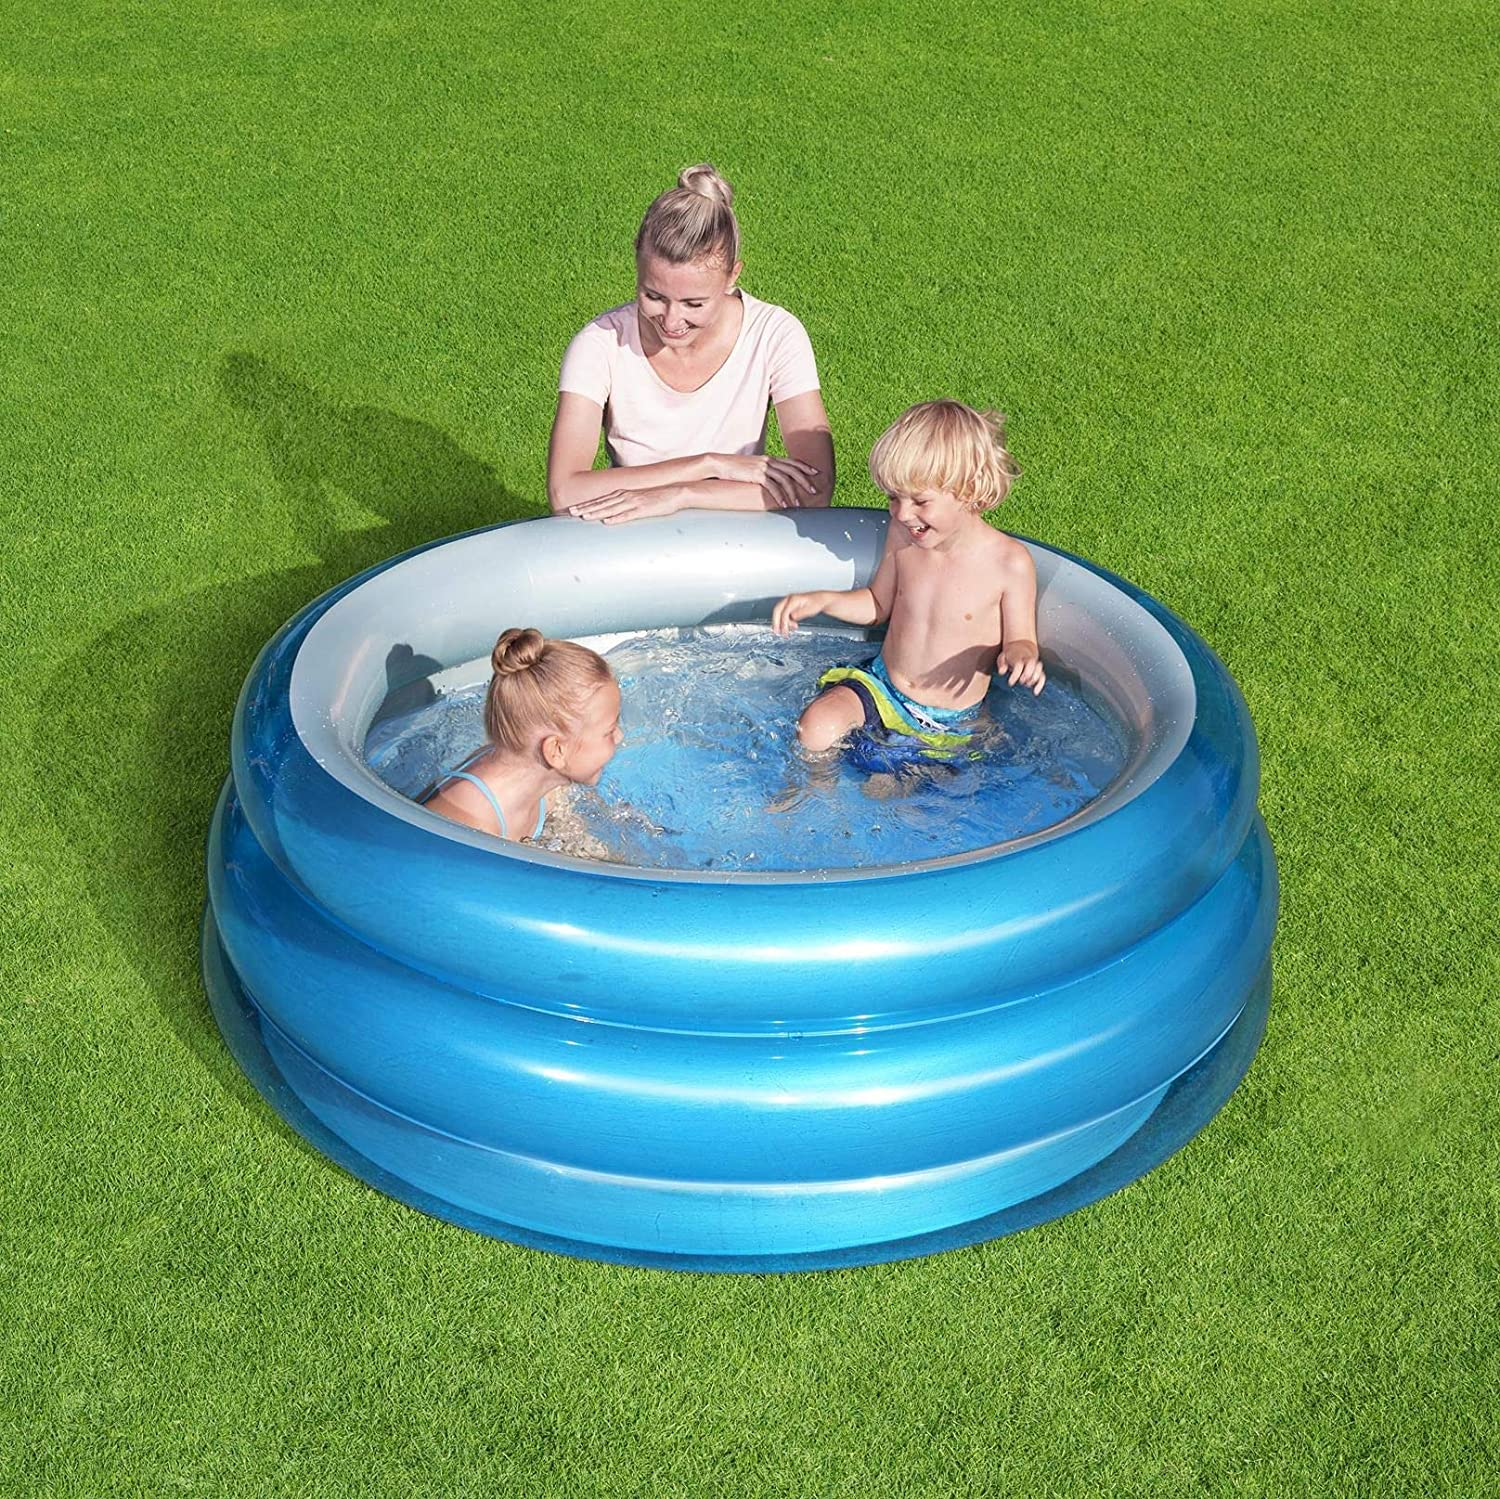 Piscina Hinchable Infantil Bestway Big Metallic 3-Ring Pool 150x53 cm: Amazon.es: Jardín